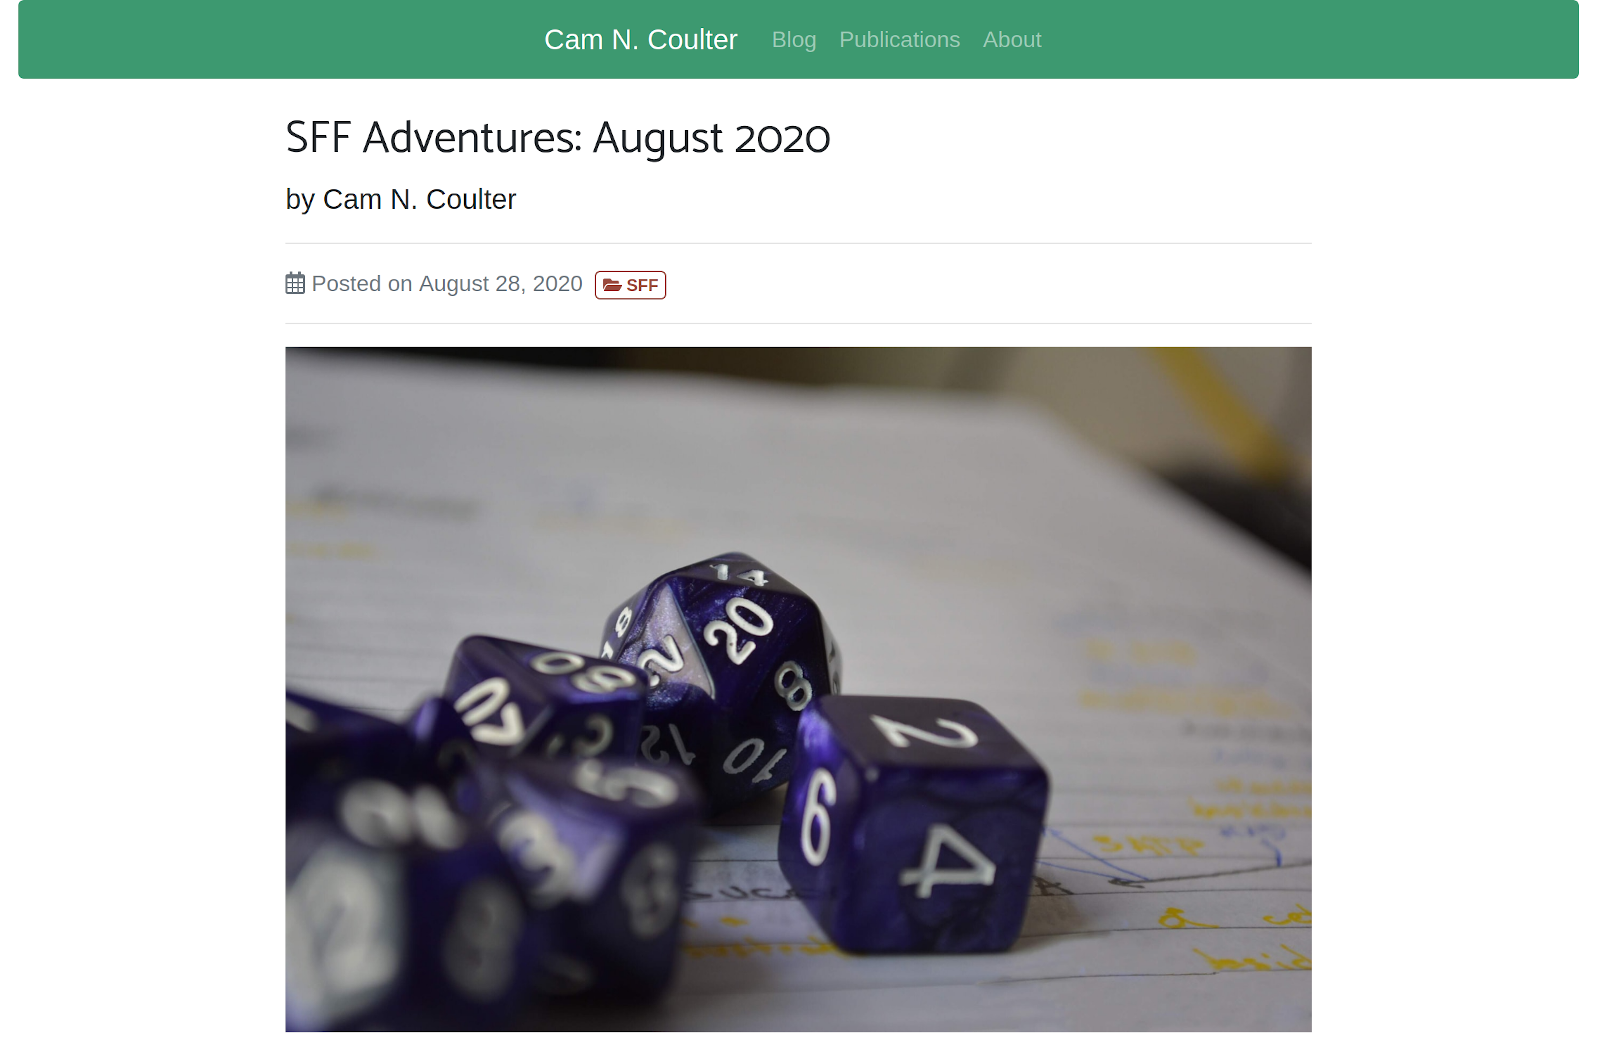 Screenshot of a blog post: SFF Adventures August 2020 by Cam N. Coulter